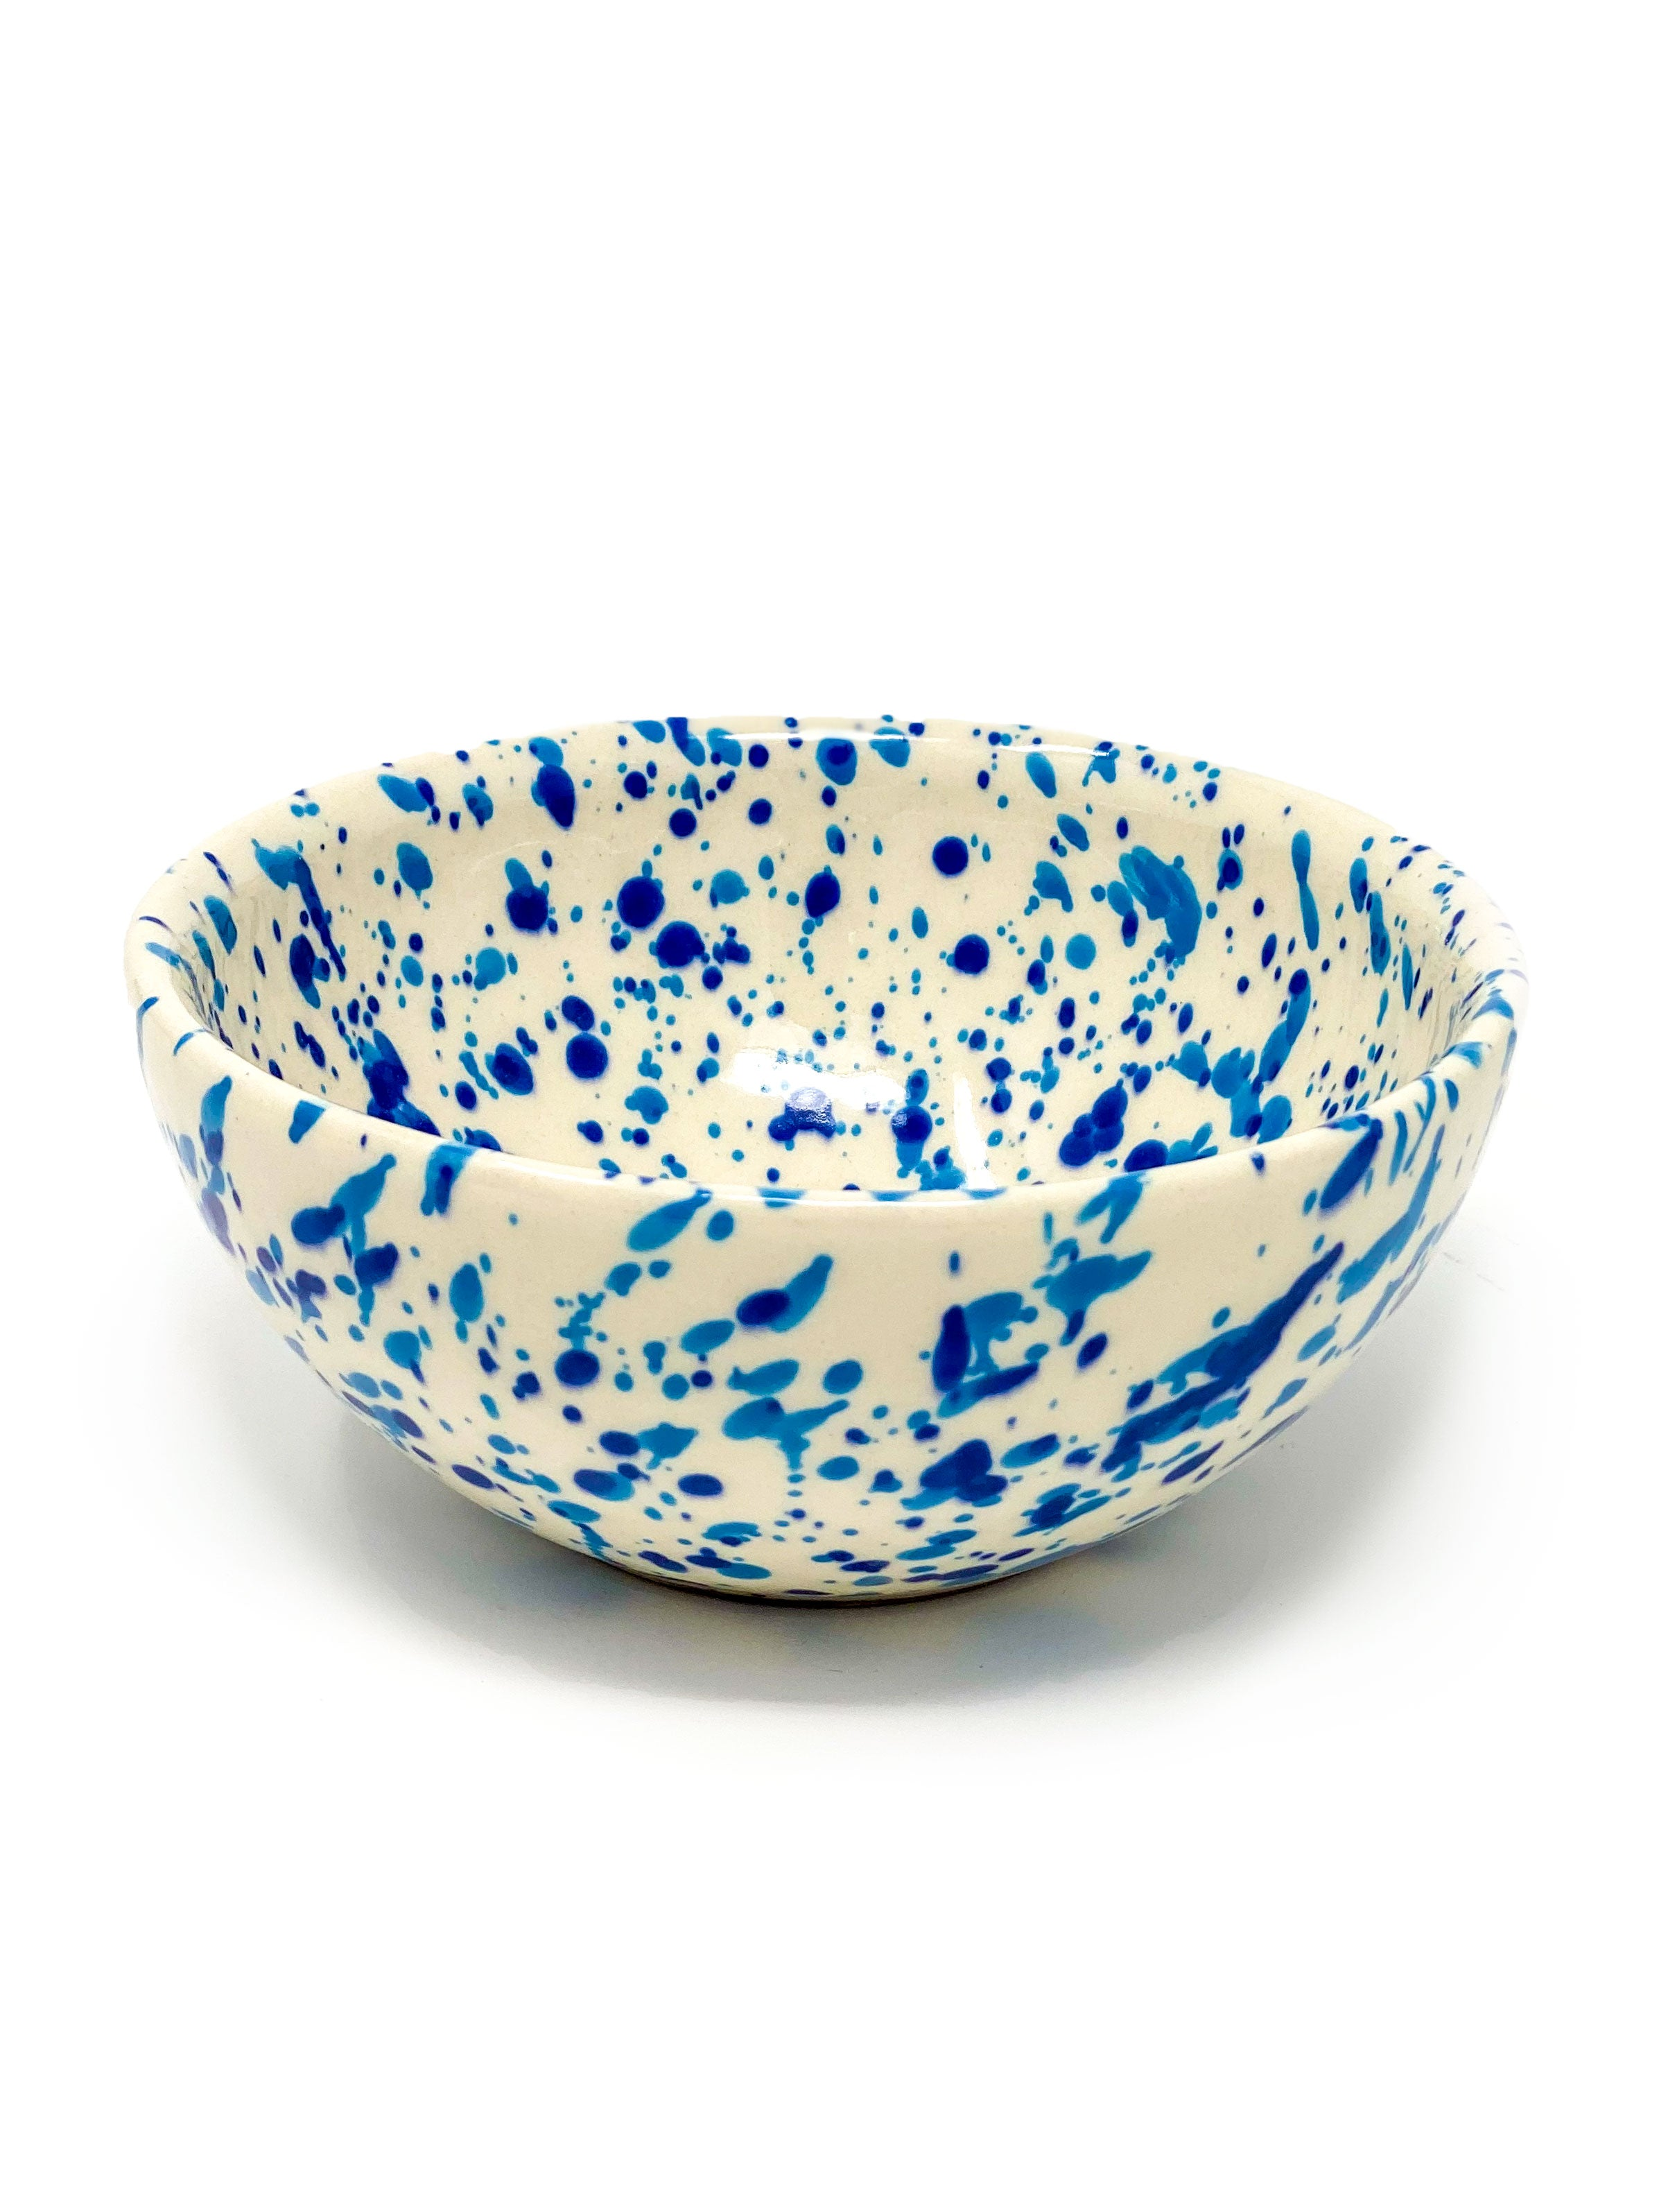 Sconset Mixed Blue Spongeware Bowl